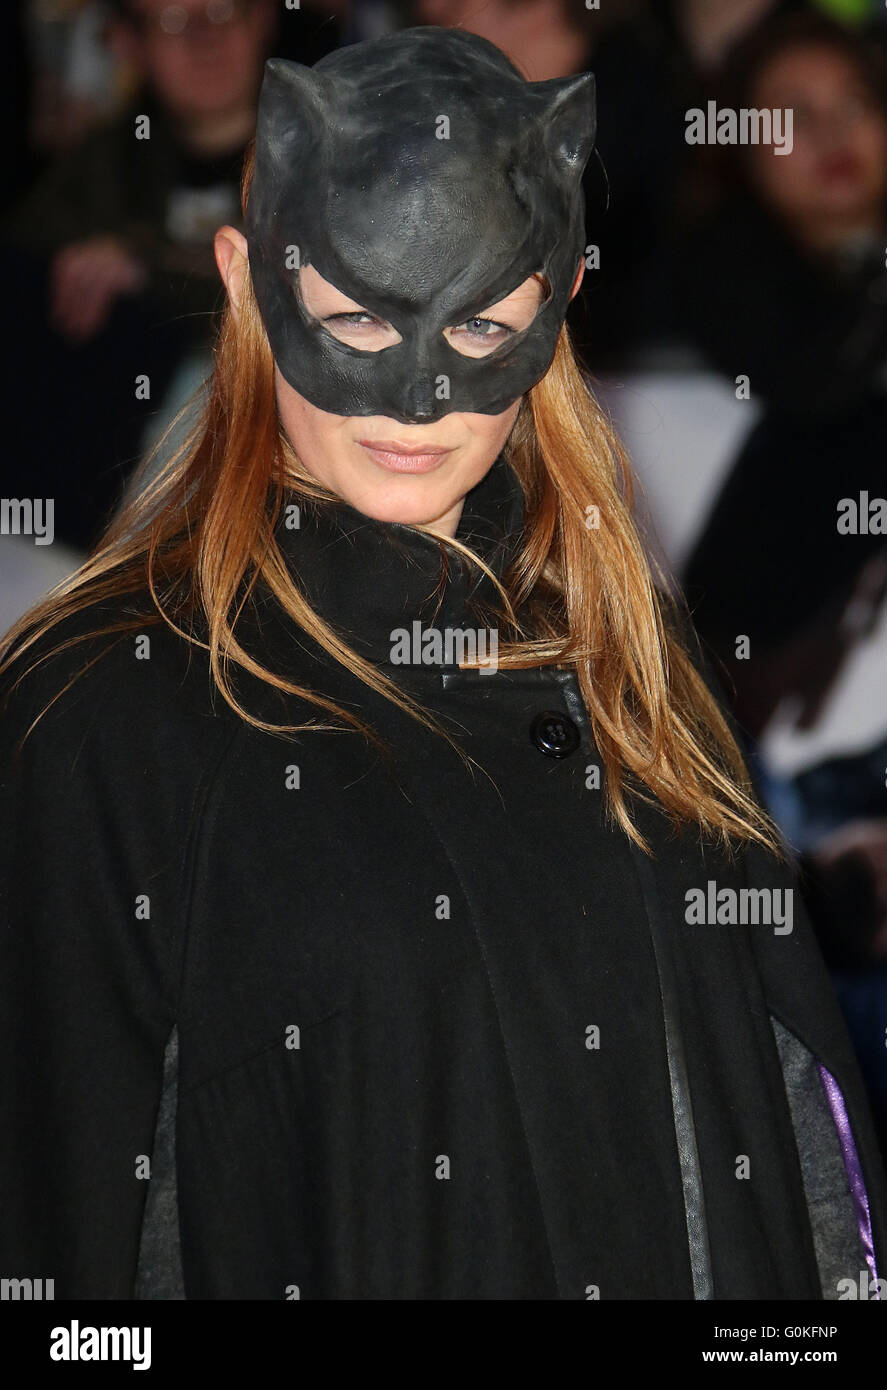 March 22, 2016 - Olivia Inge attending The European Premiere of 'Batman V Superman: Dawn Of Justice' at - Stock Image